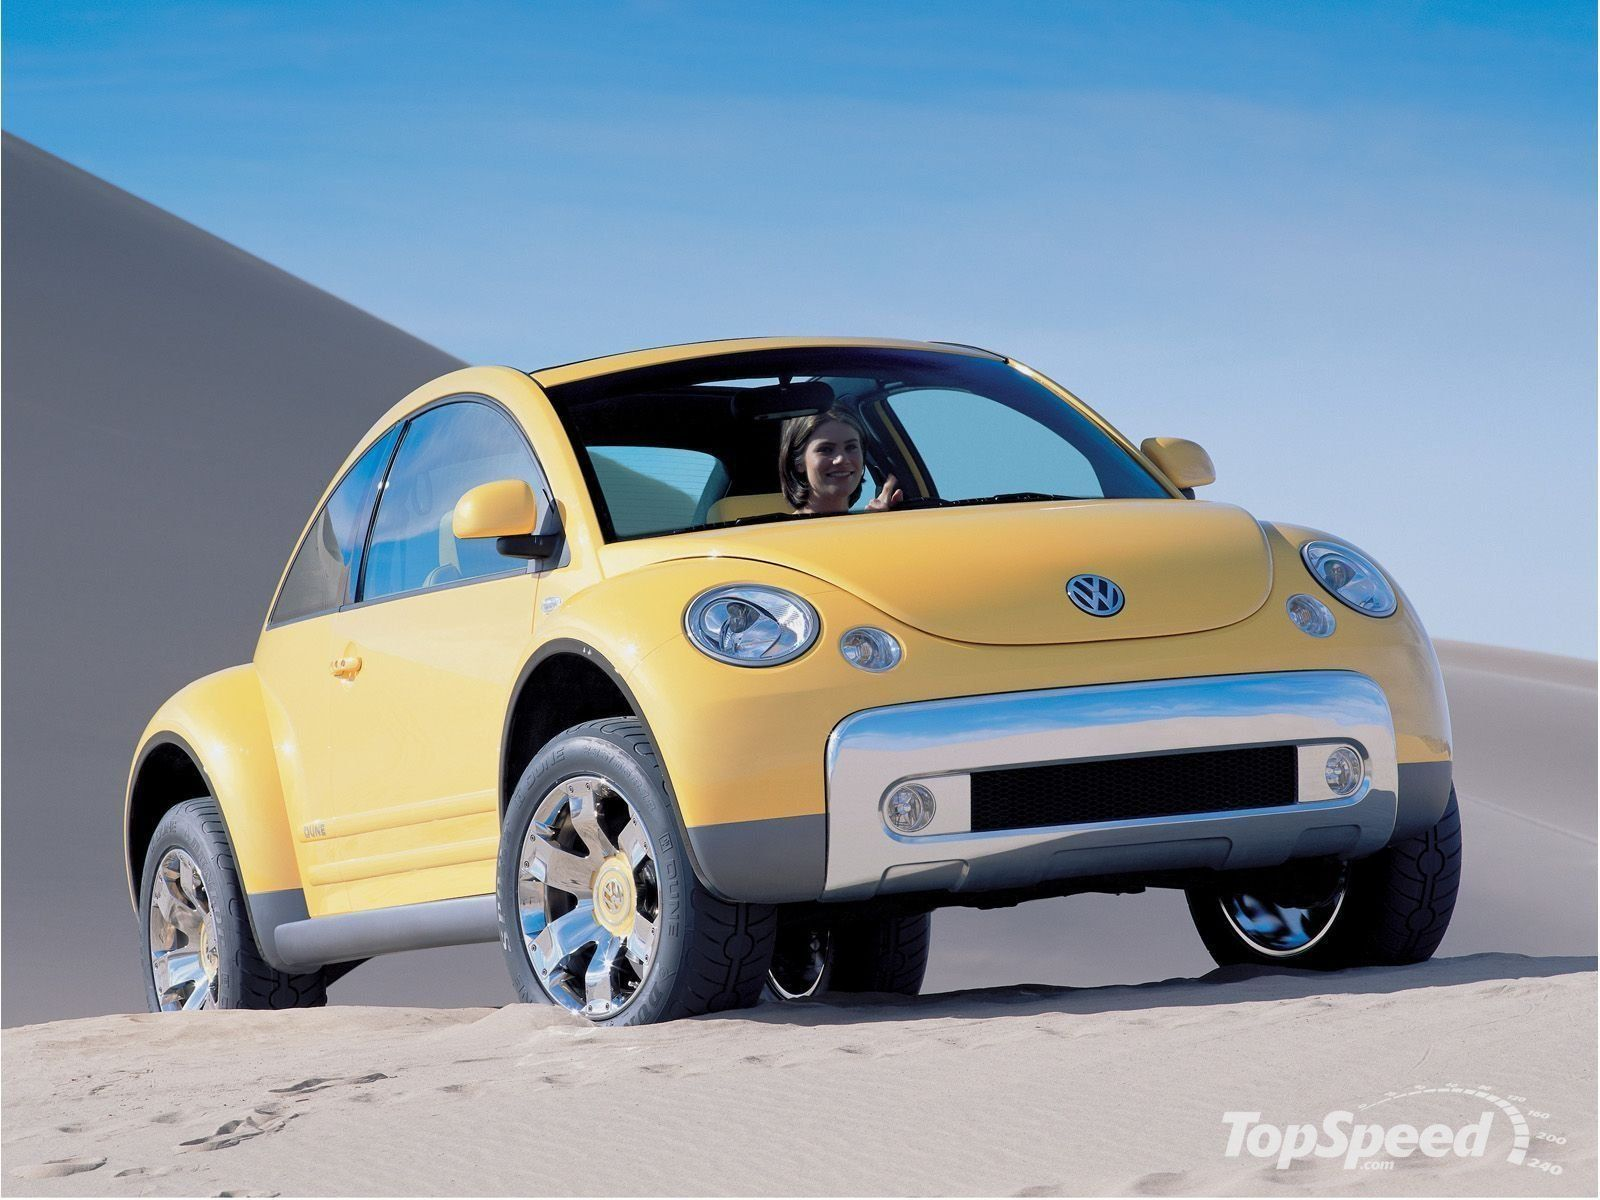 2014 volkswagen new beetle dune concept car model